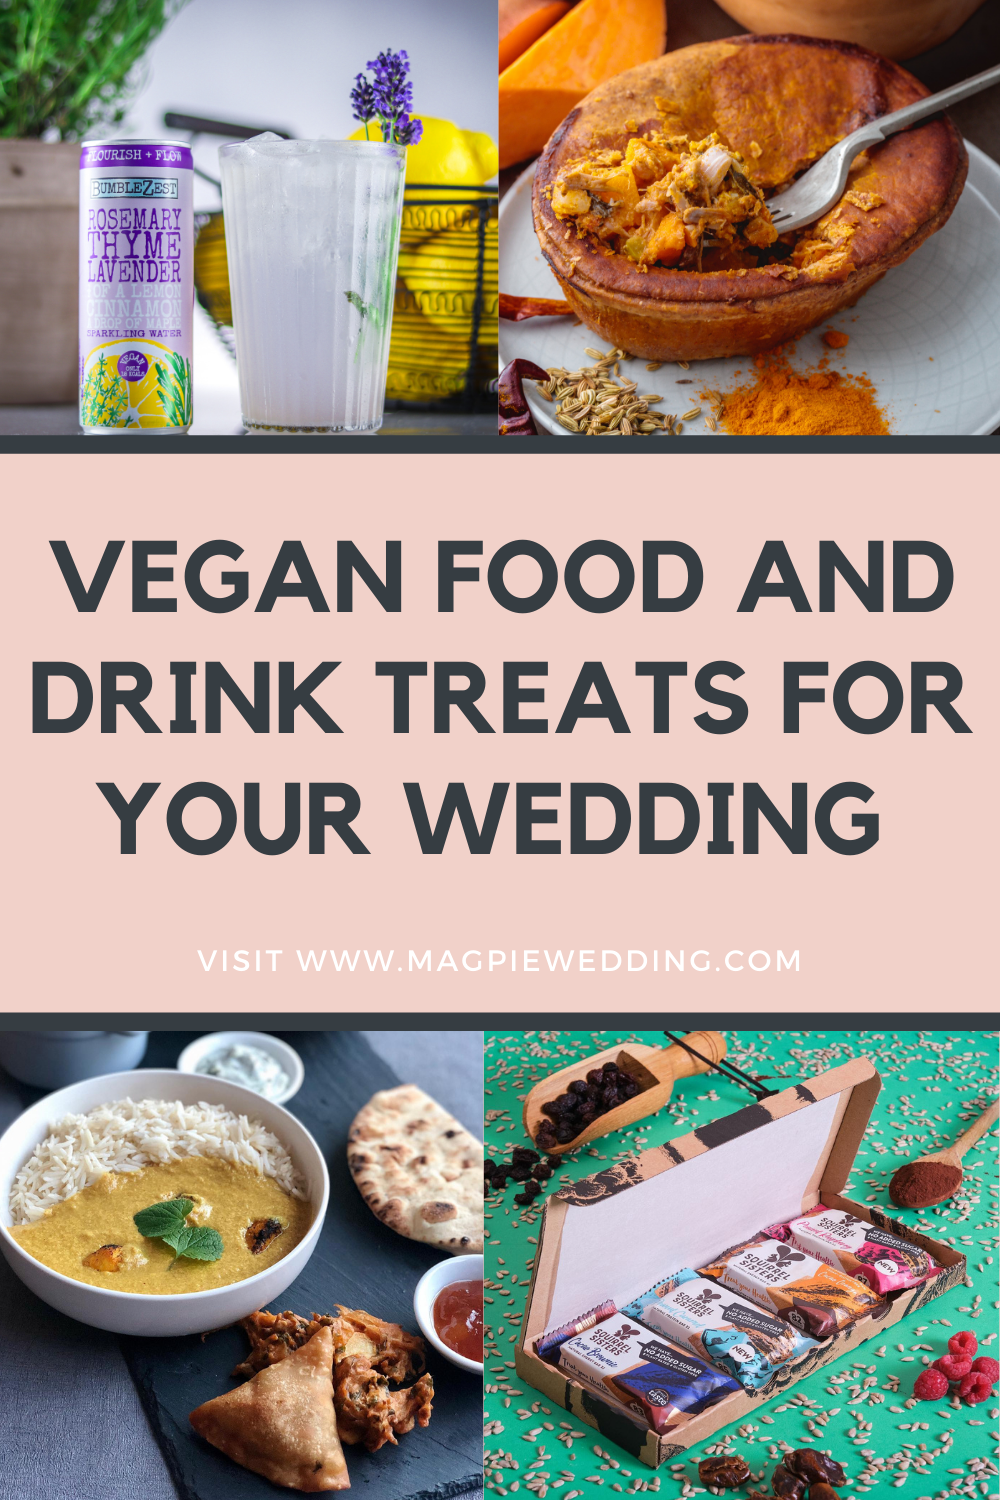 7 Vegan Food Treats For Veganuary & Your Wedding Day